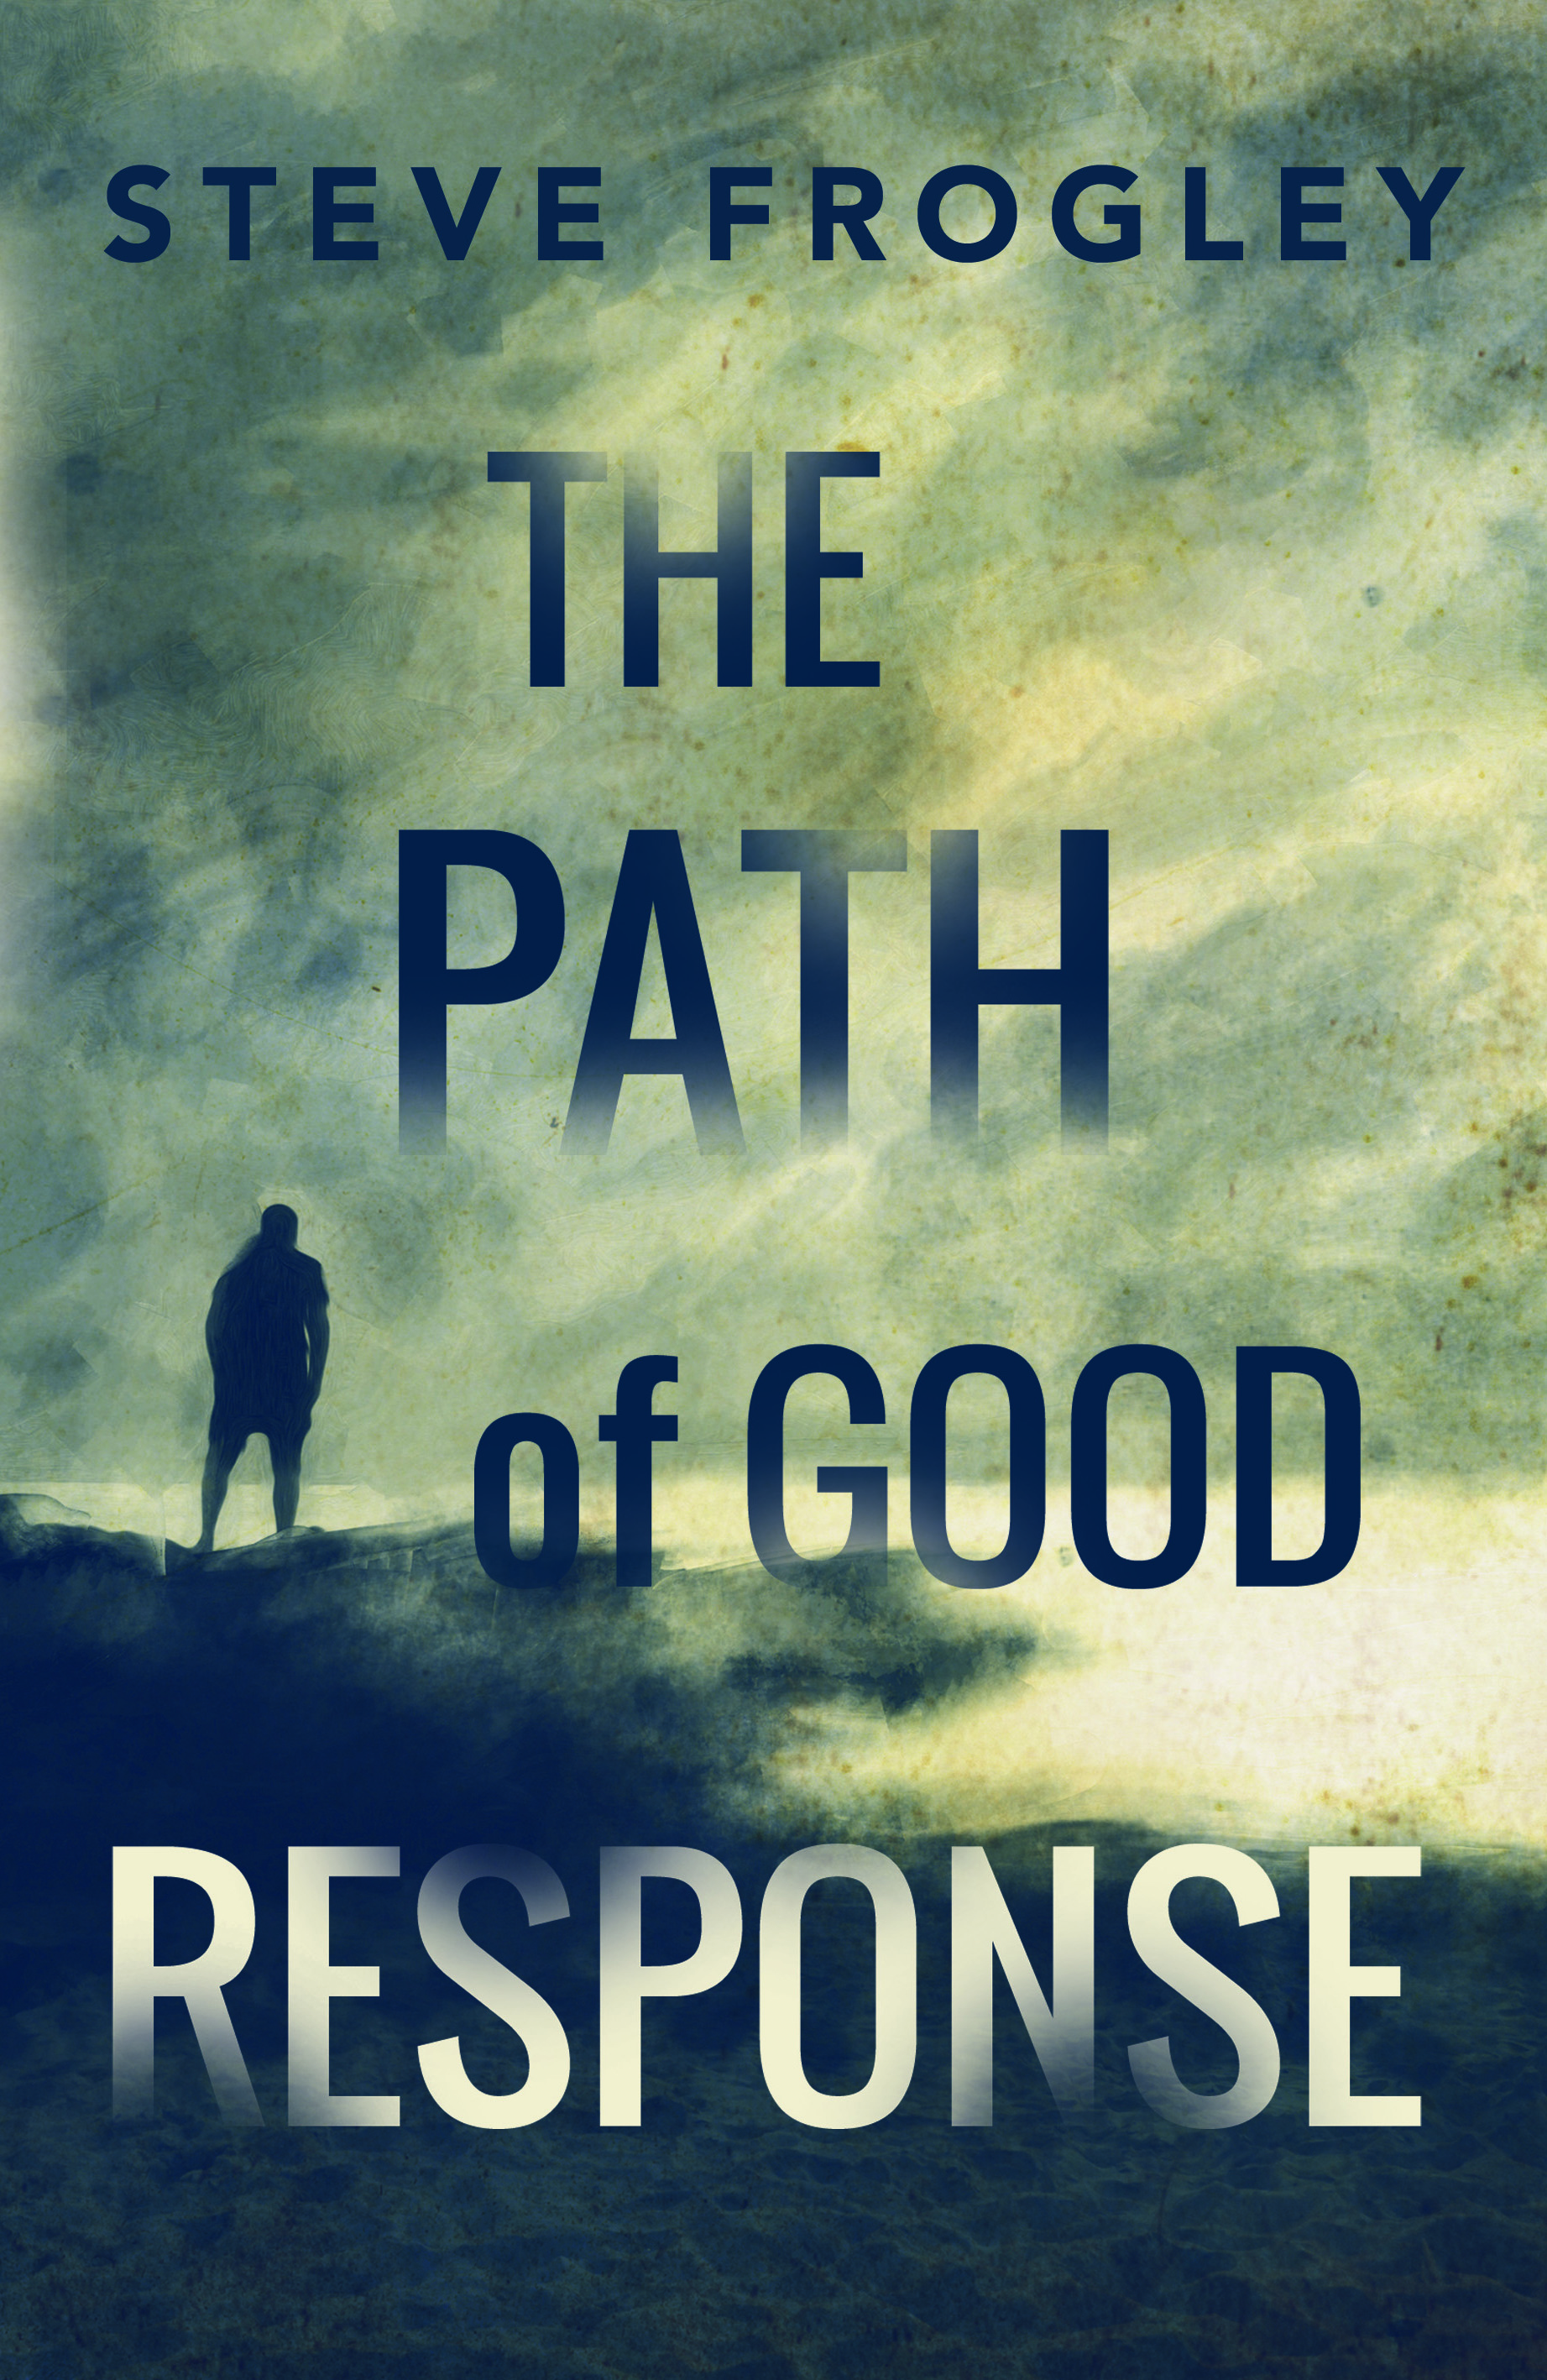 The Path of Good Response's Ebook Image